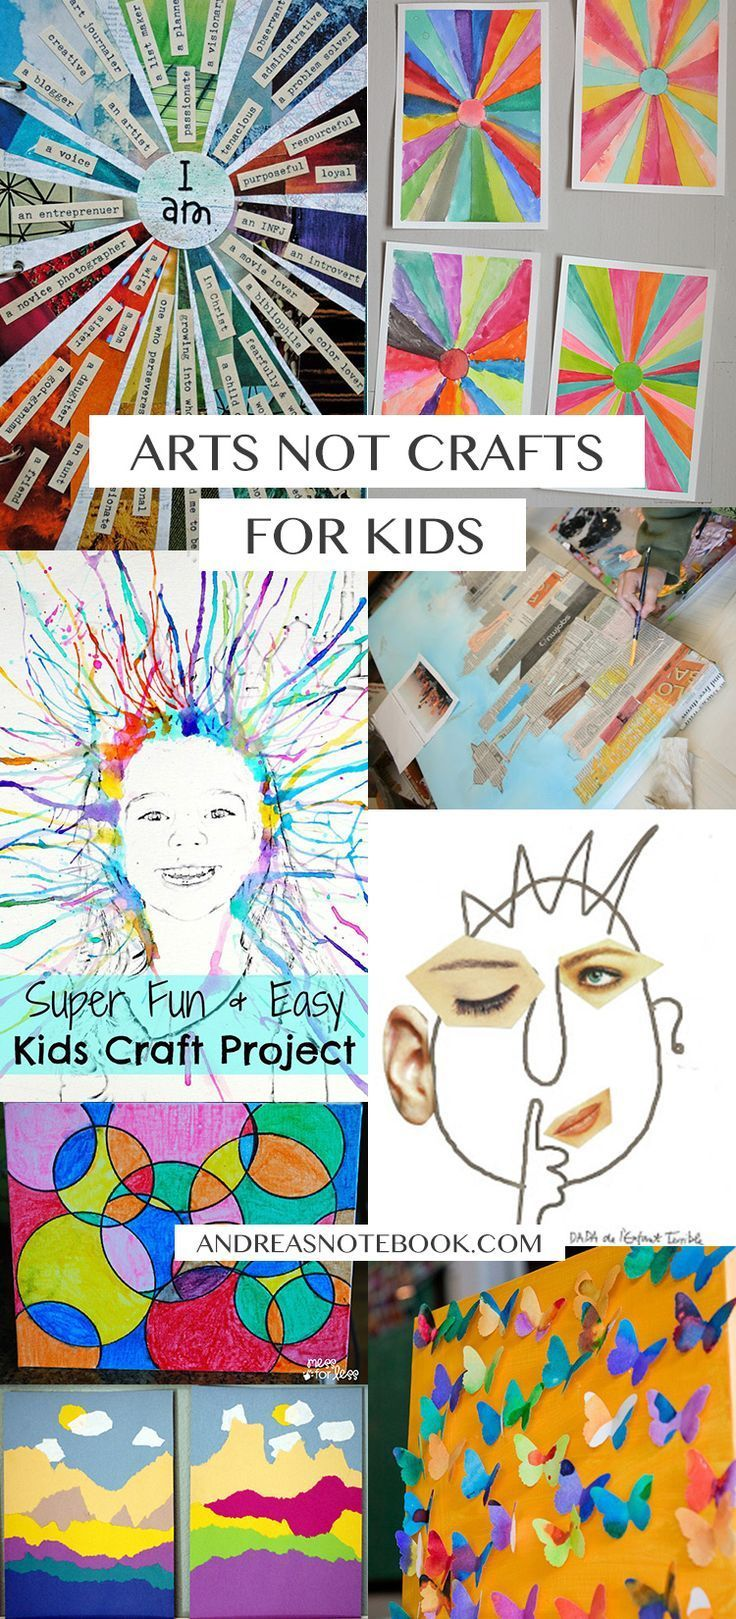 Literature craft and voice 2nd edition - Tired Of Kid Crafts Introduce Them To The Arts Check Out This Inspiration